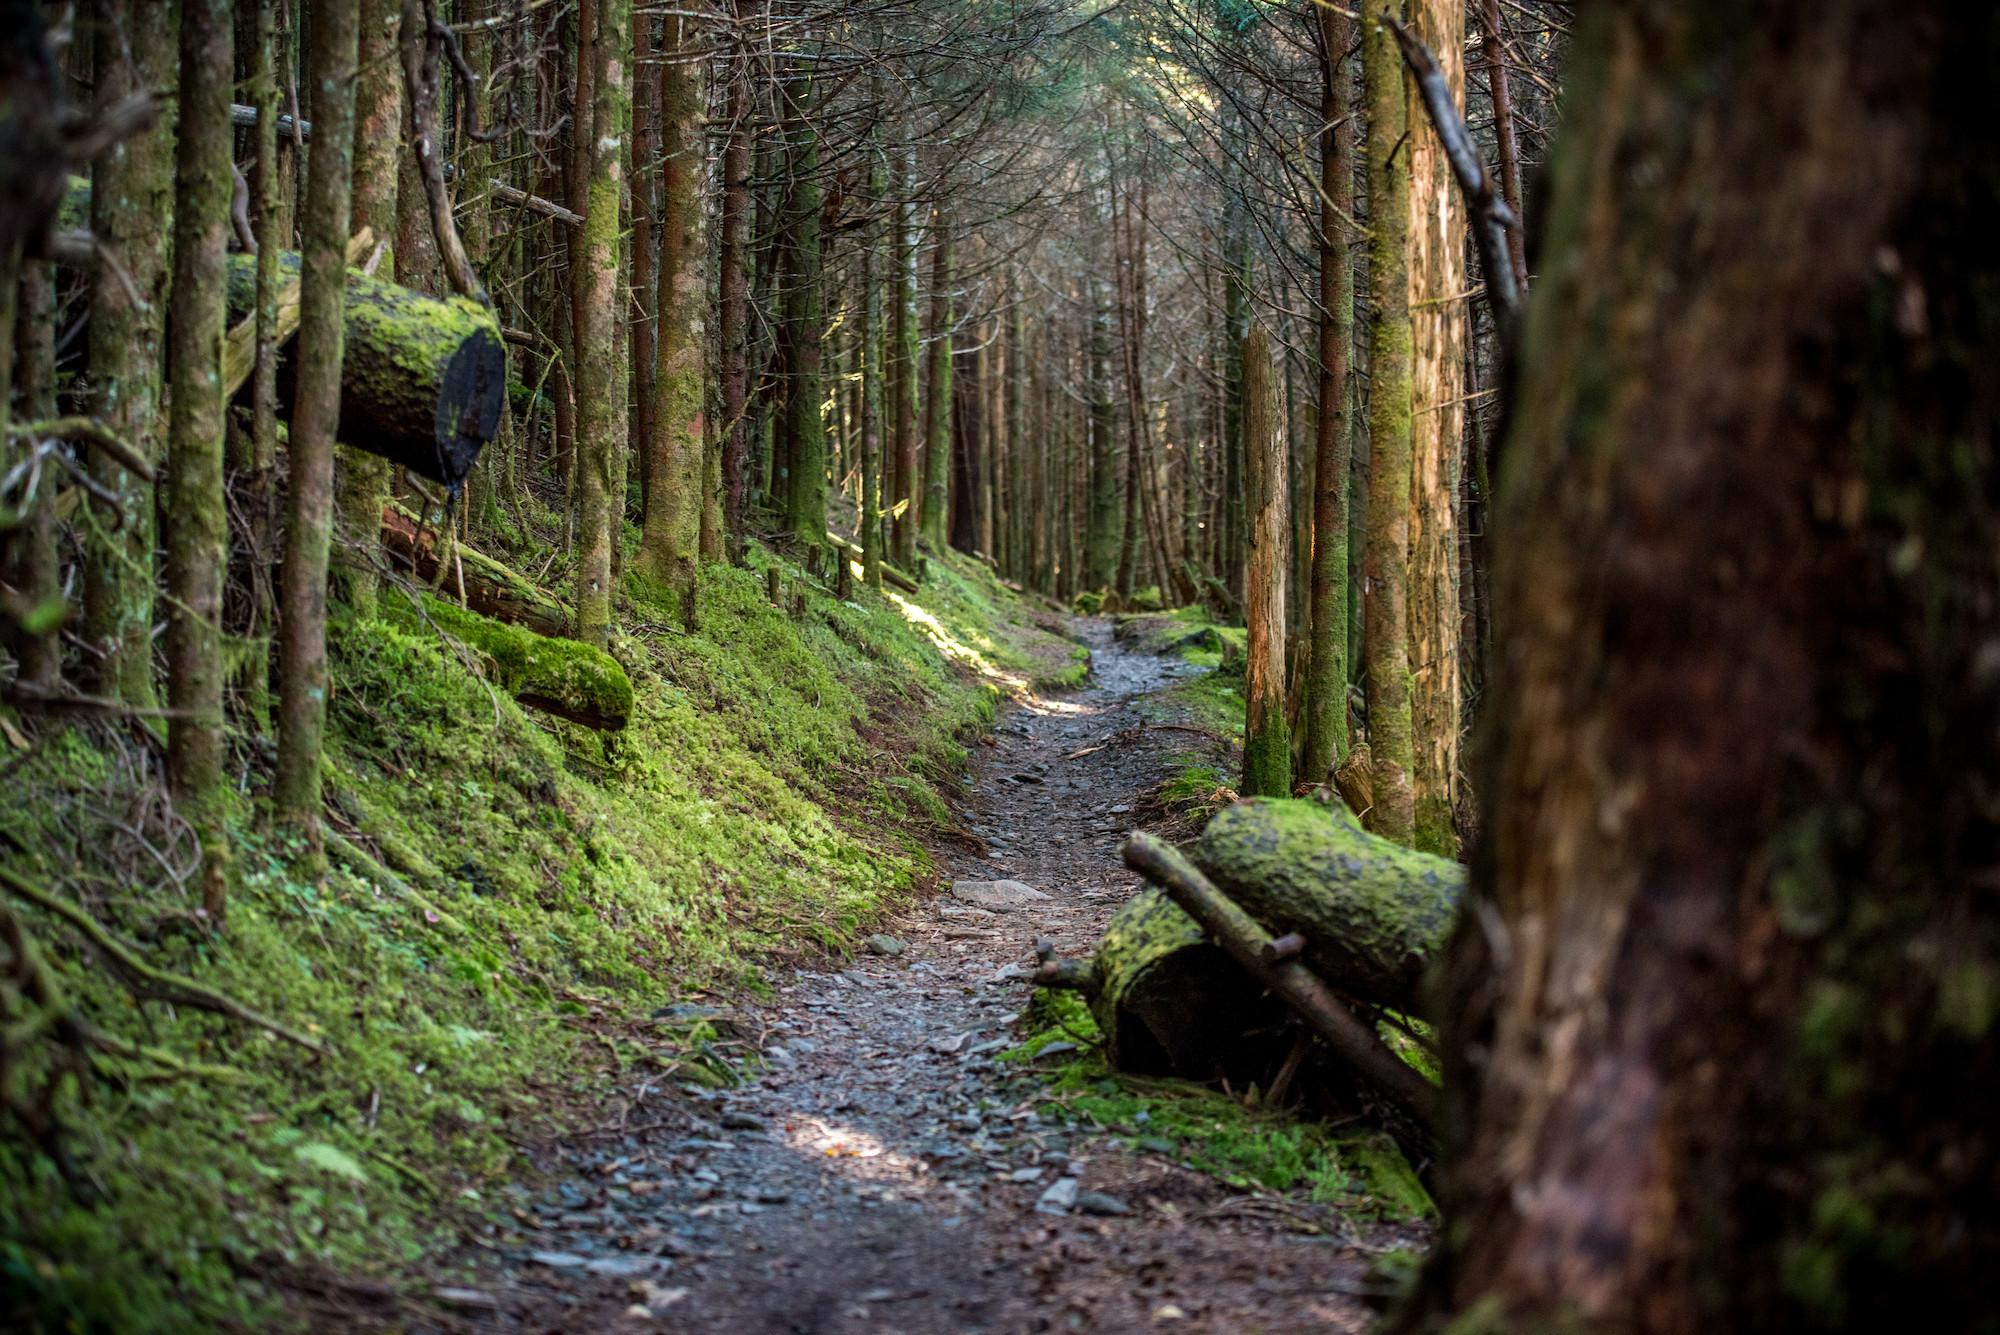 A.T. in Great Smoky Mountains National Park